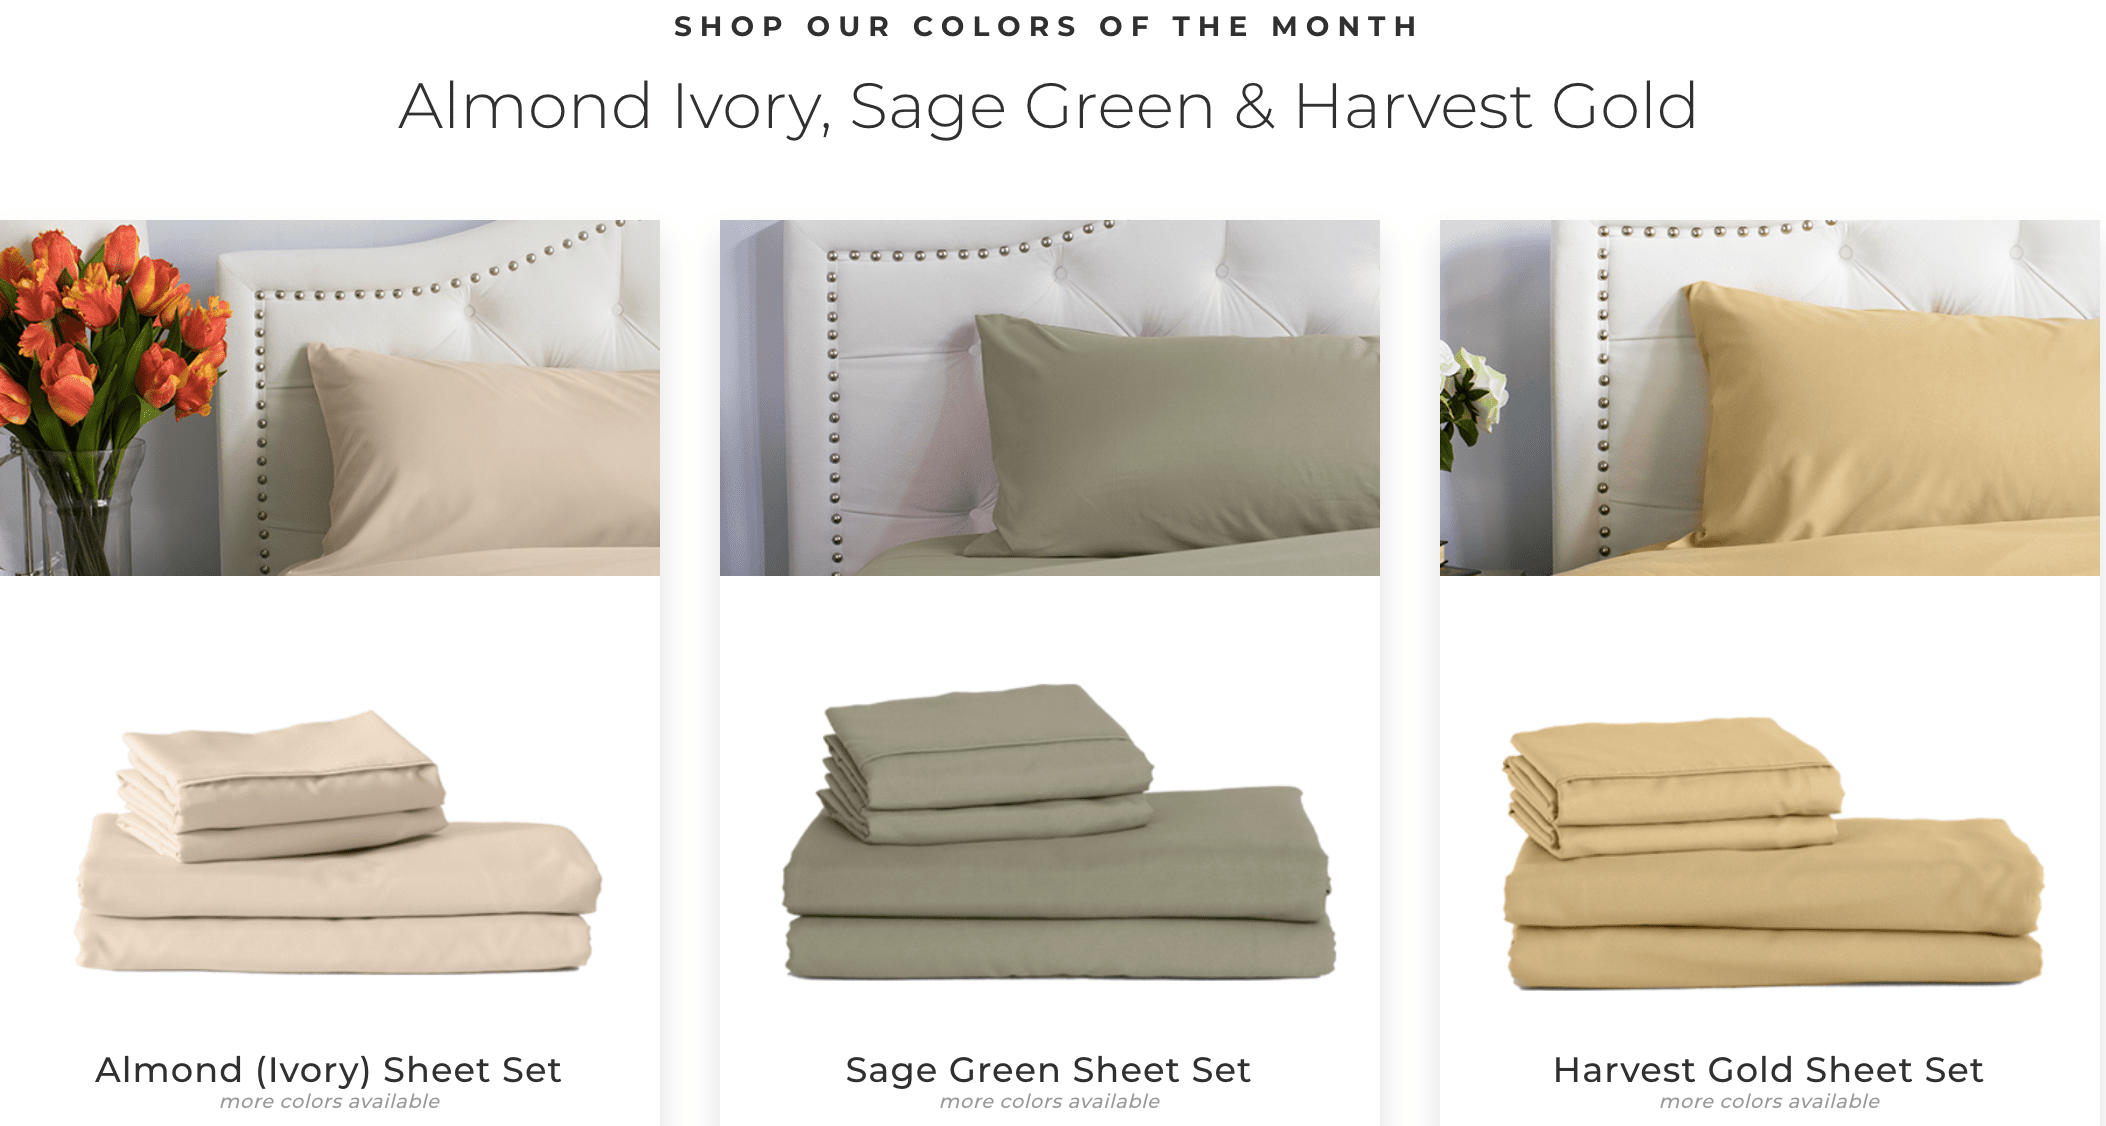 PeachSkin Sheets March Colors of the Month